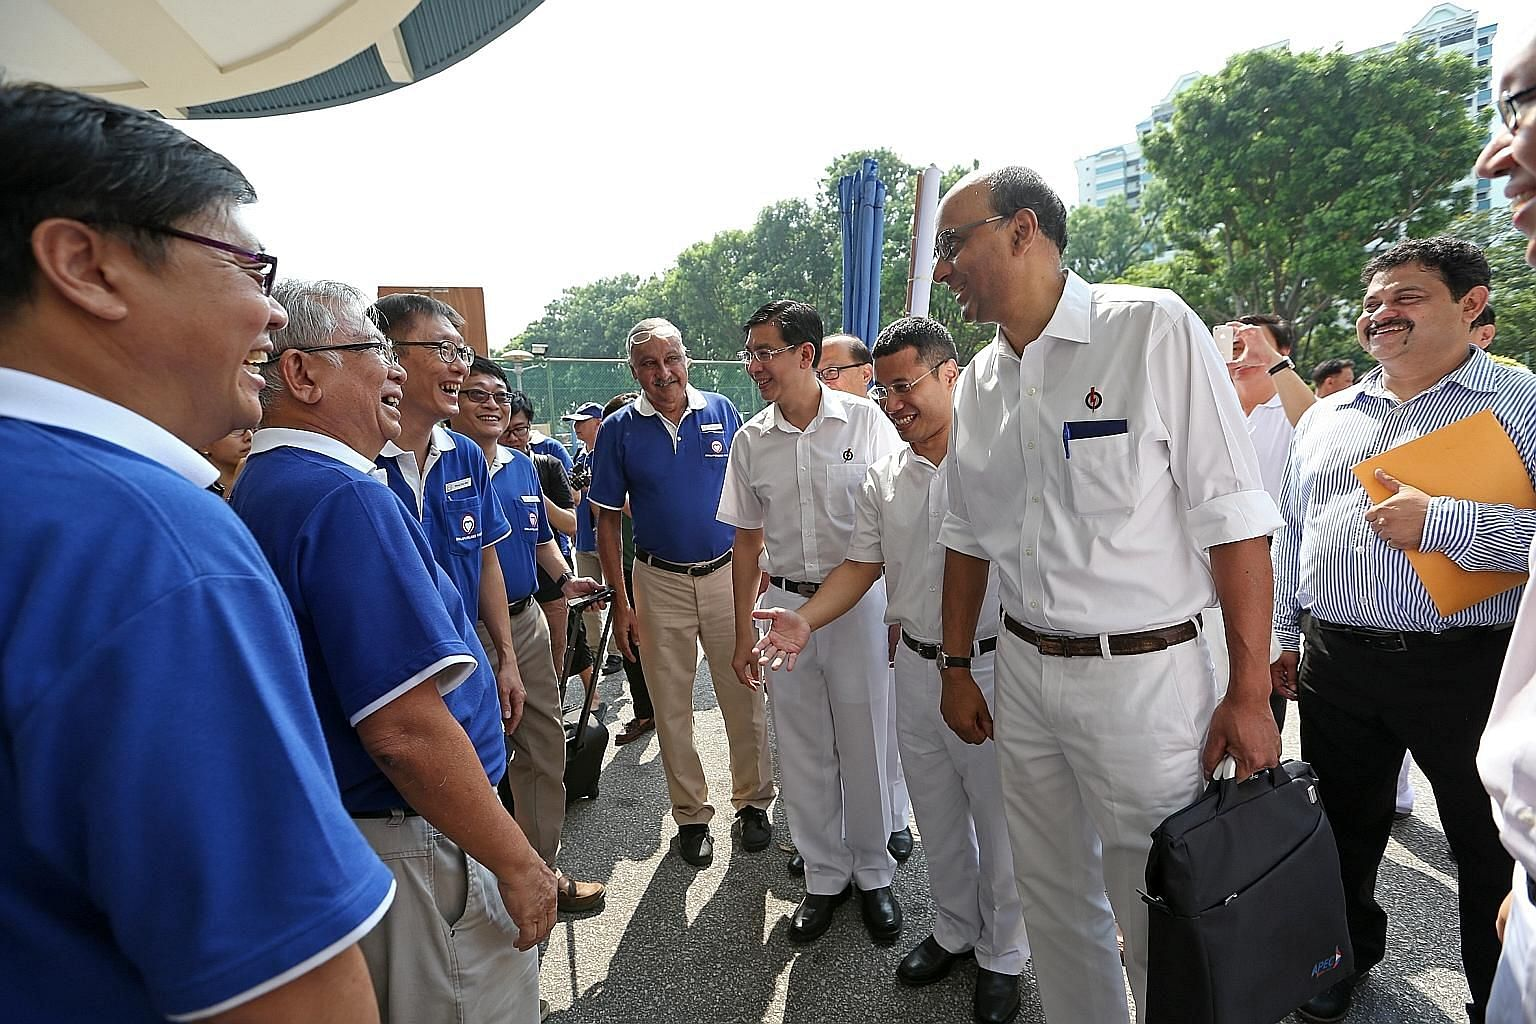 SingFirst candidates for Jurong GRC (from left) Mr Wong Soon Hong, Mr Tan Peng Ann, Mr Wong Chee Wai, Mr David Foo and Mr Sukdeu Singh meeting three members of the PAP team at the nomination centre yesterday. They are (in white, from right) Deputy Pr